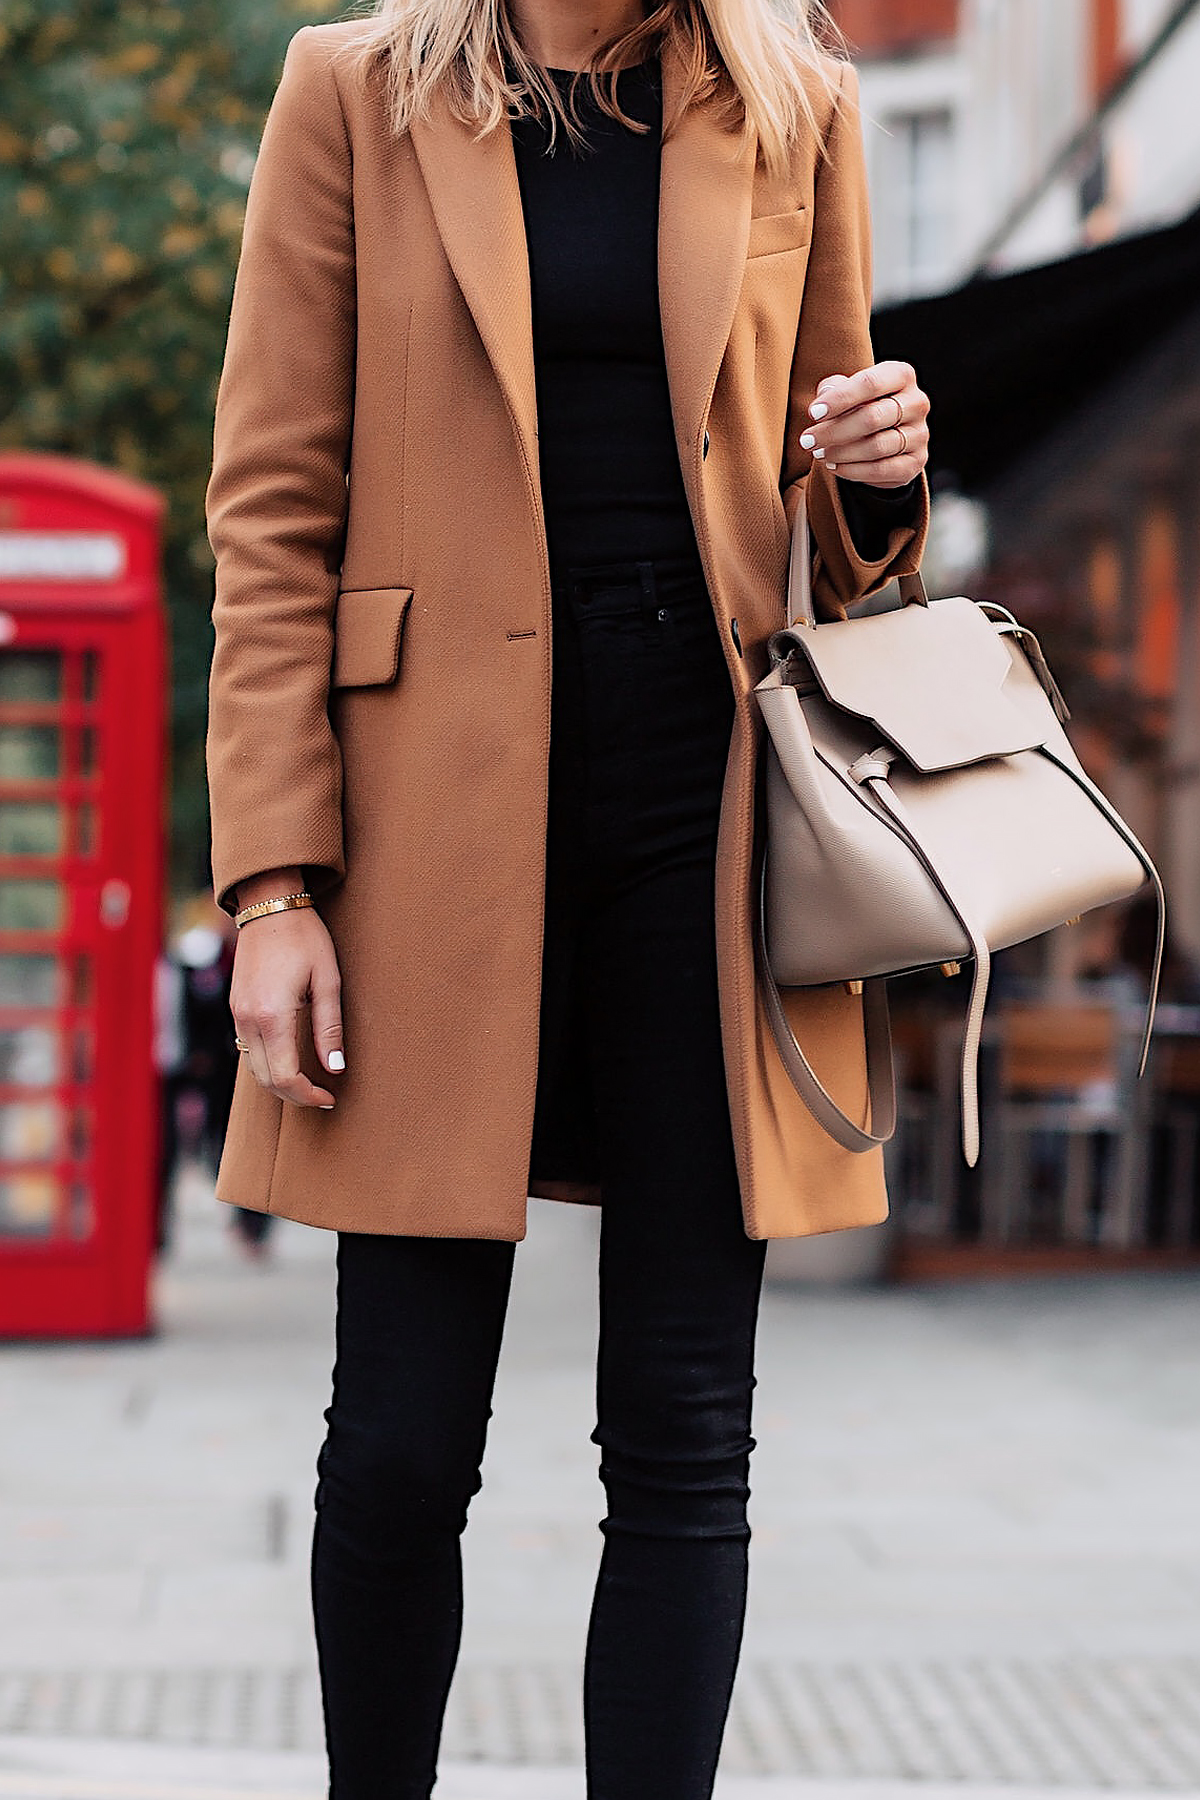 Woman Wearing Zara Camel Coat Black Sweater Black Skinny Jeans Outfit Celine Belt Bag Fashion Jackson San Diego Fashion Blogger London Street Style